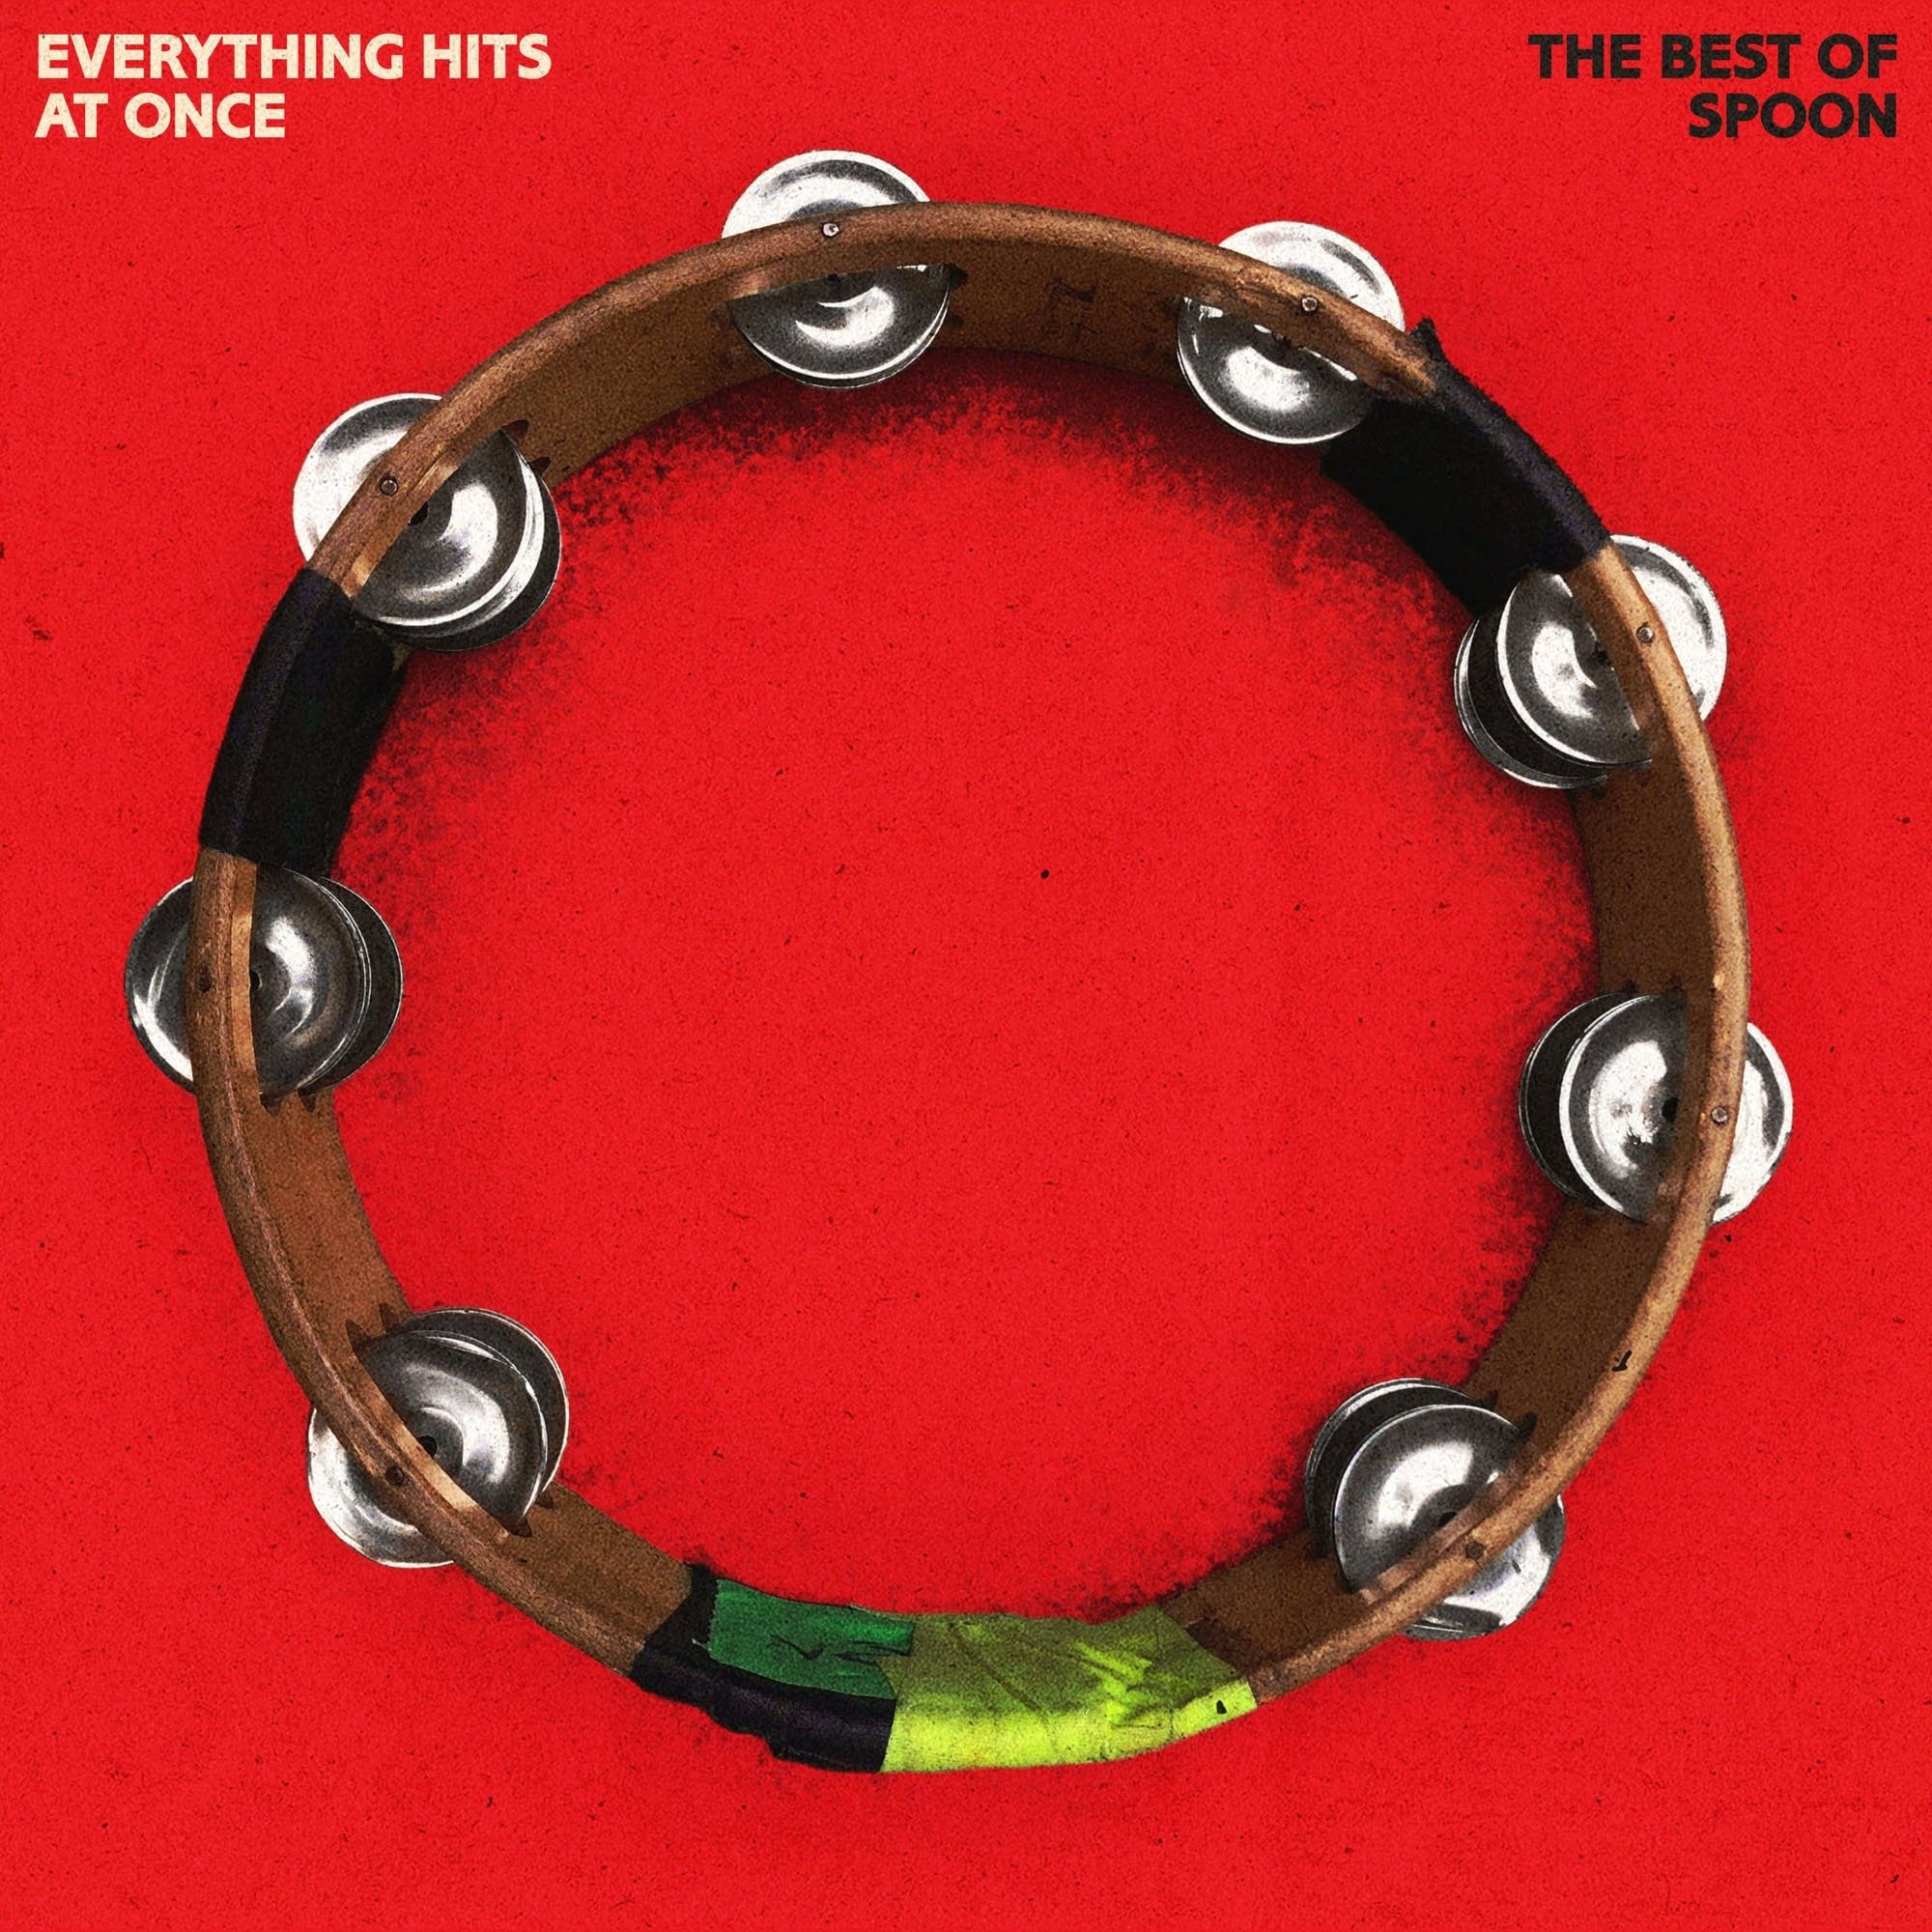 Spoon, 'Everything Hits At Once: The Best of Spoon'